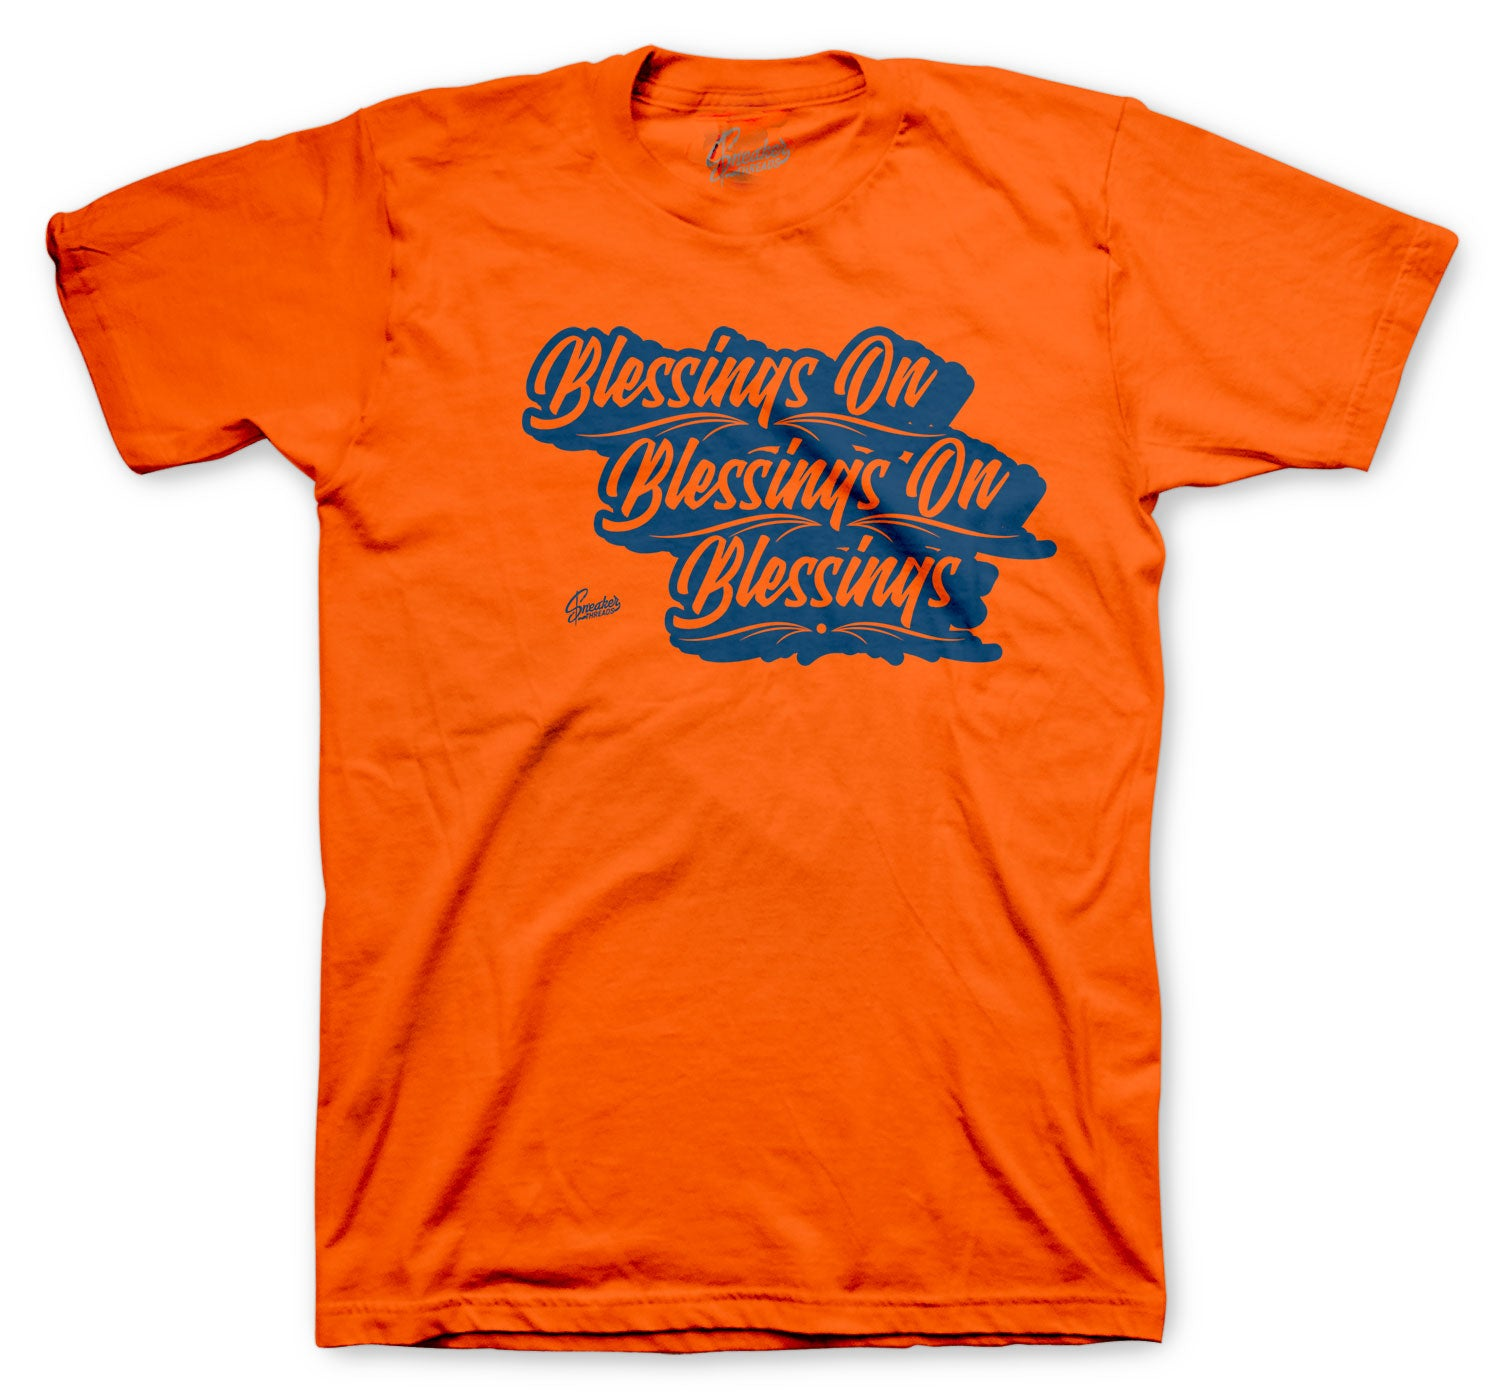 T shirt collection for men matching with the foamposite sneaker collection orange rugged